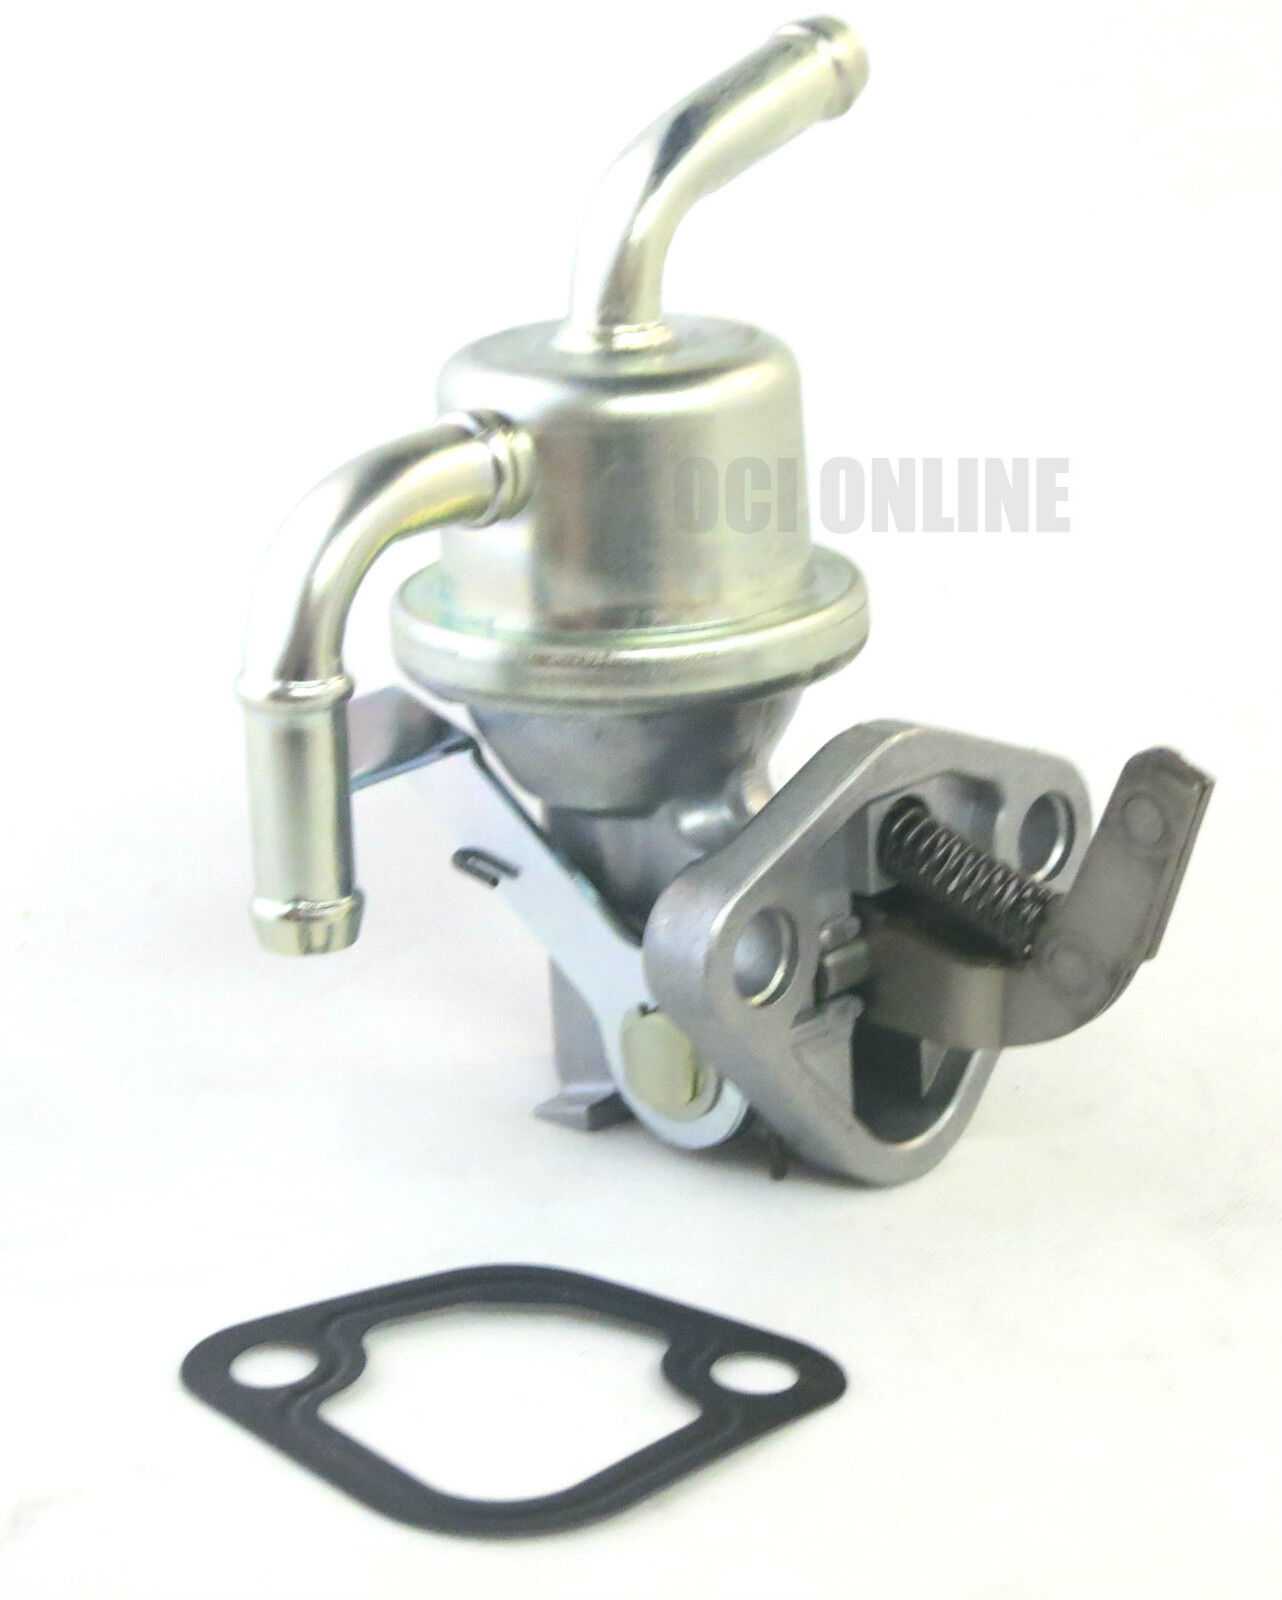 new kubota mechanical fuel pump for grasshopper 928d 928d2 930d rh ebay com Grasshopper 428D YouTube Grasshopper 428D Specifications